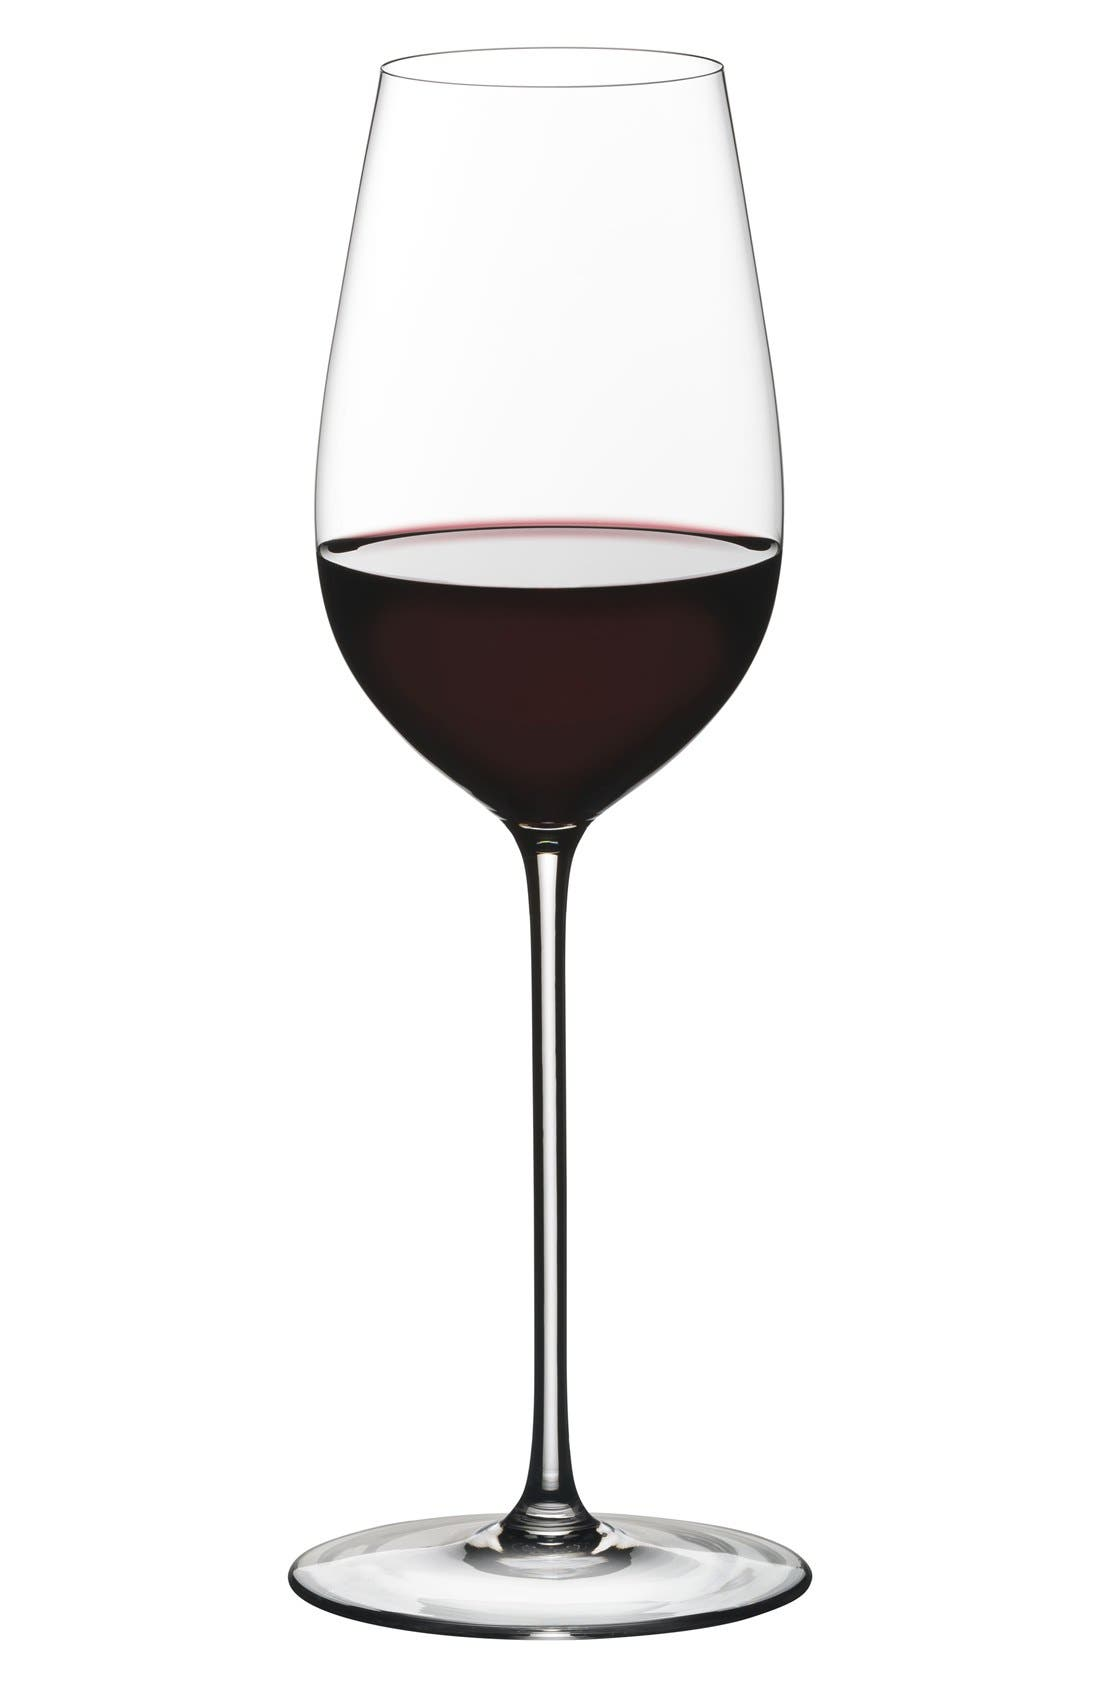 Riedel 'Superleggero' Riesling & Zinfandel Glass